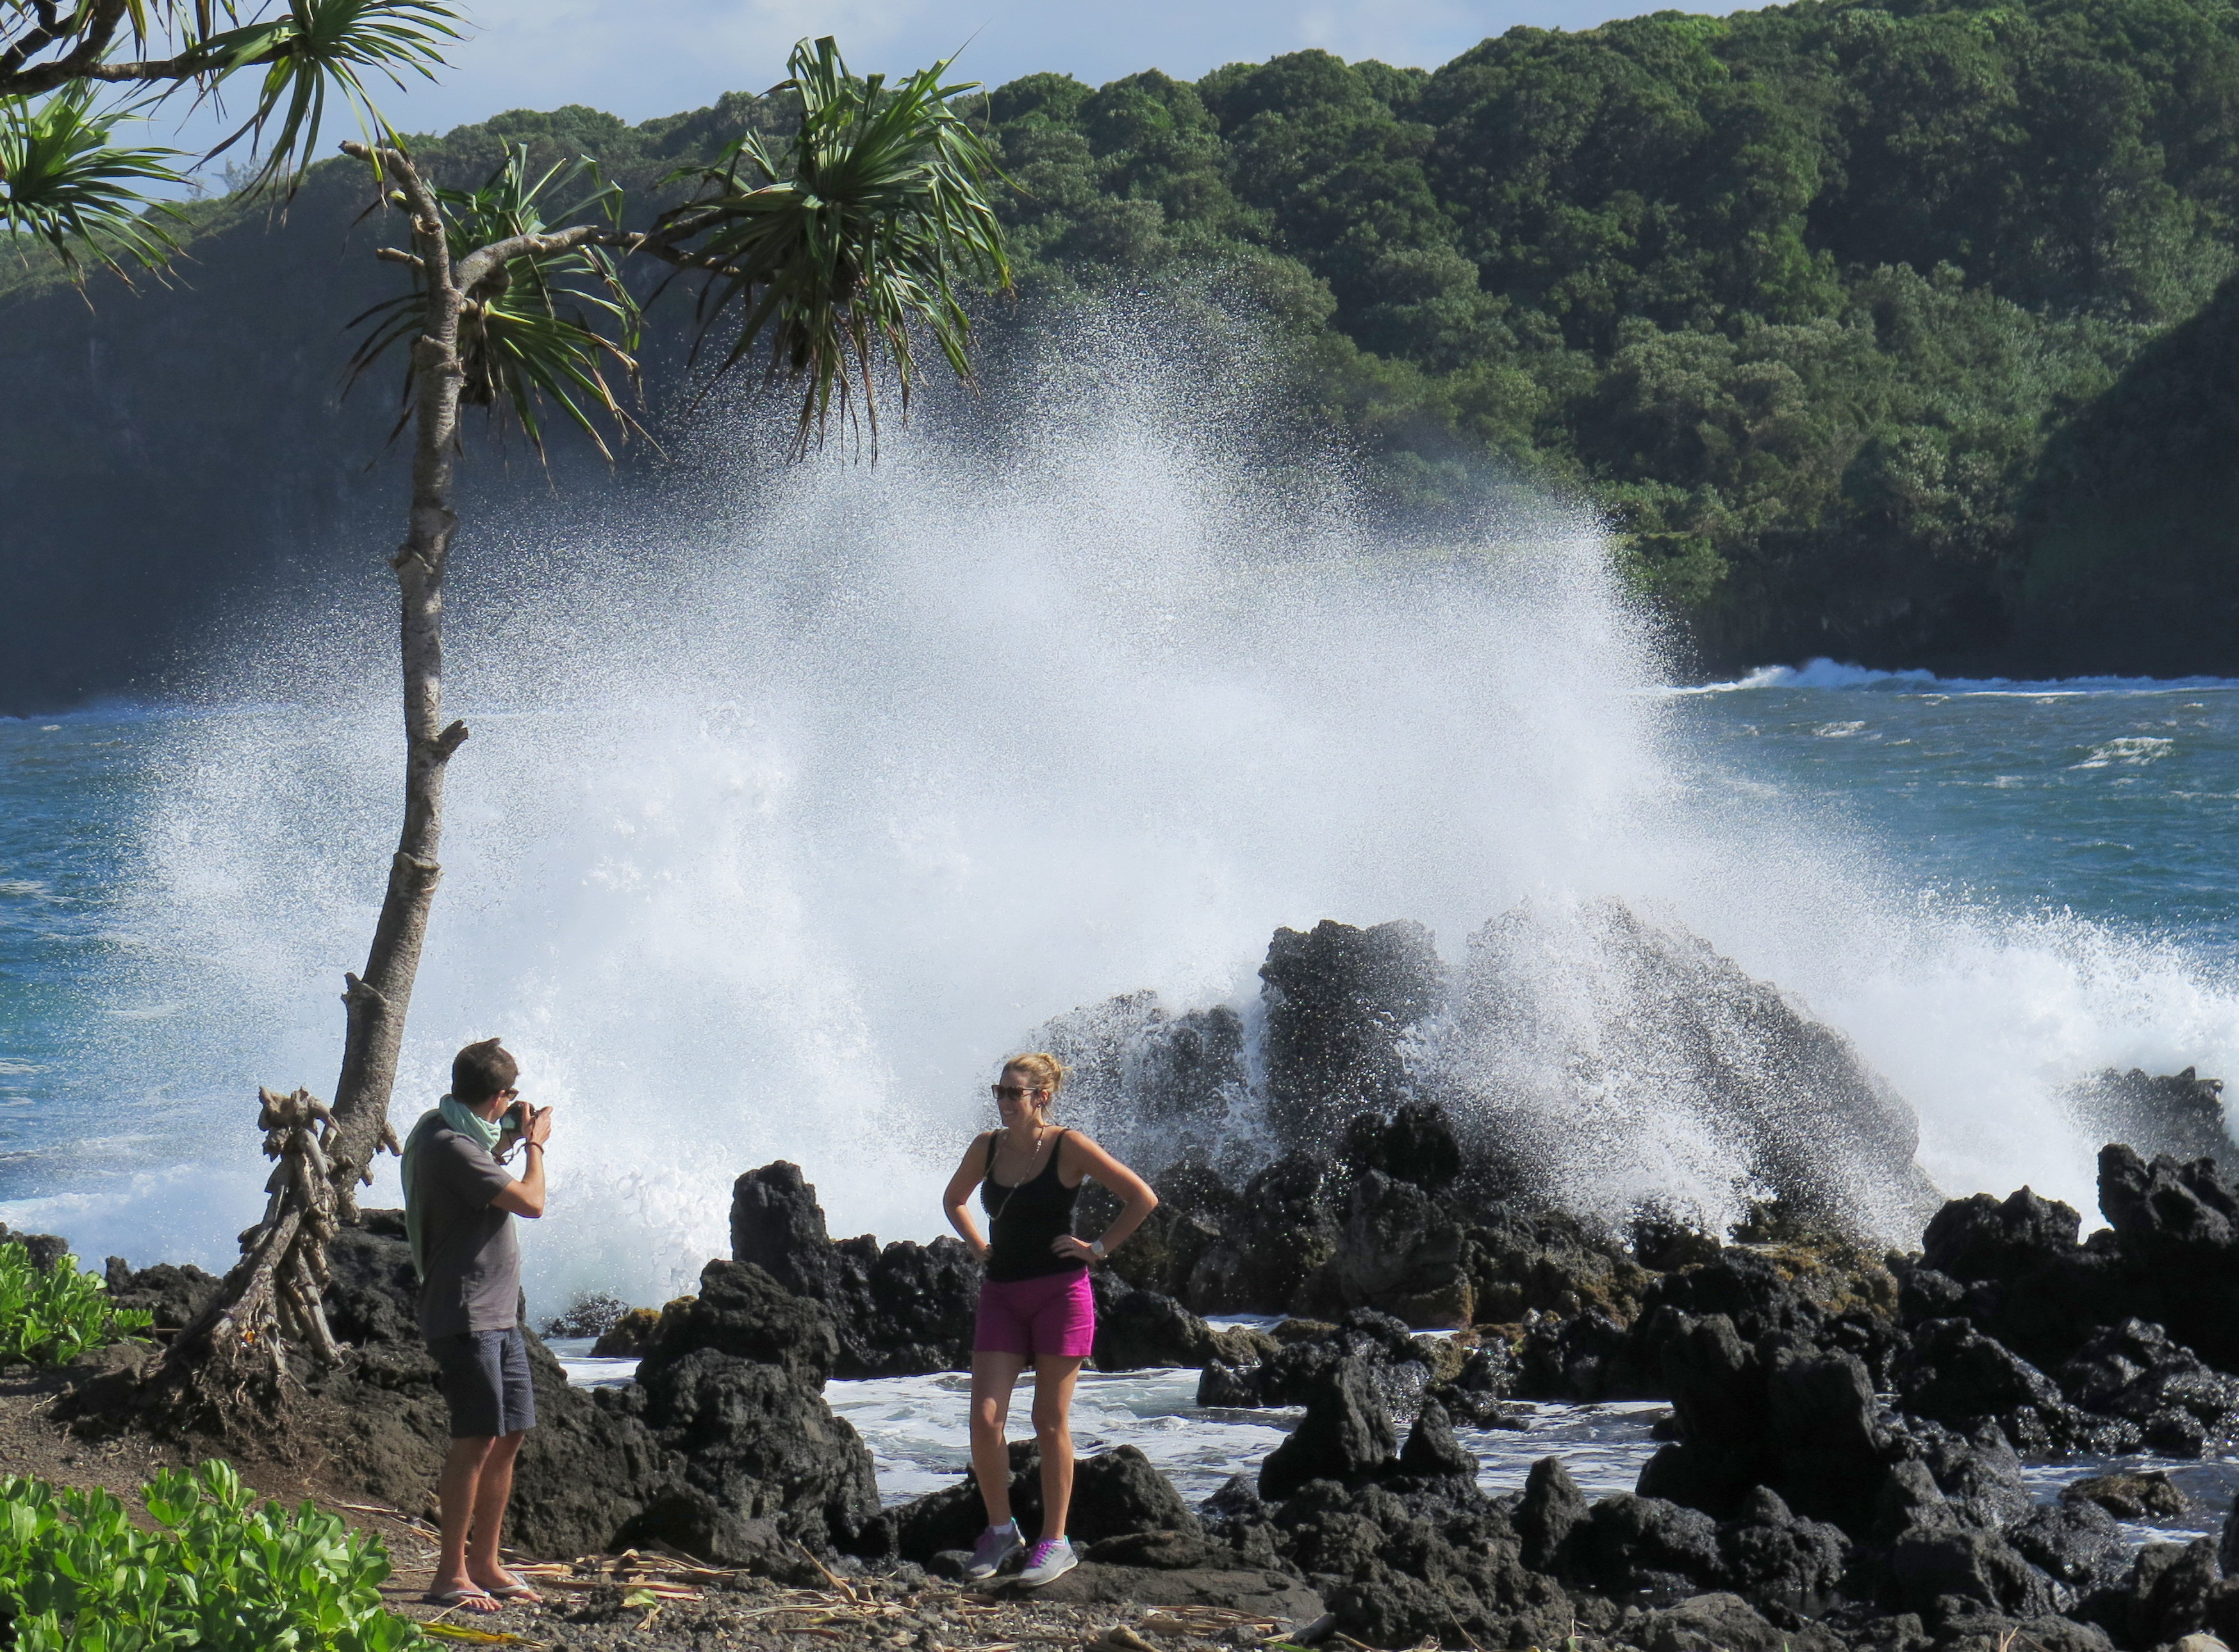 A walk along the rocks on the Ke'Anae peninsula is a magical part of a trip to Hana. There's also a great banana bread stand nearby.